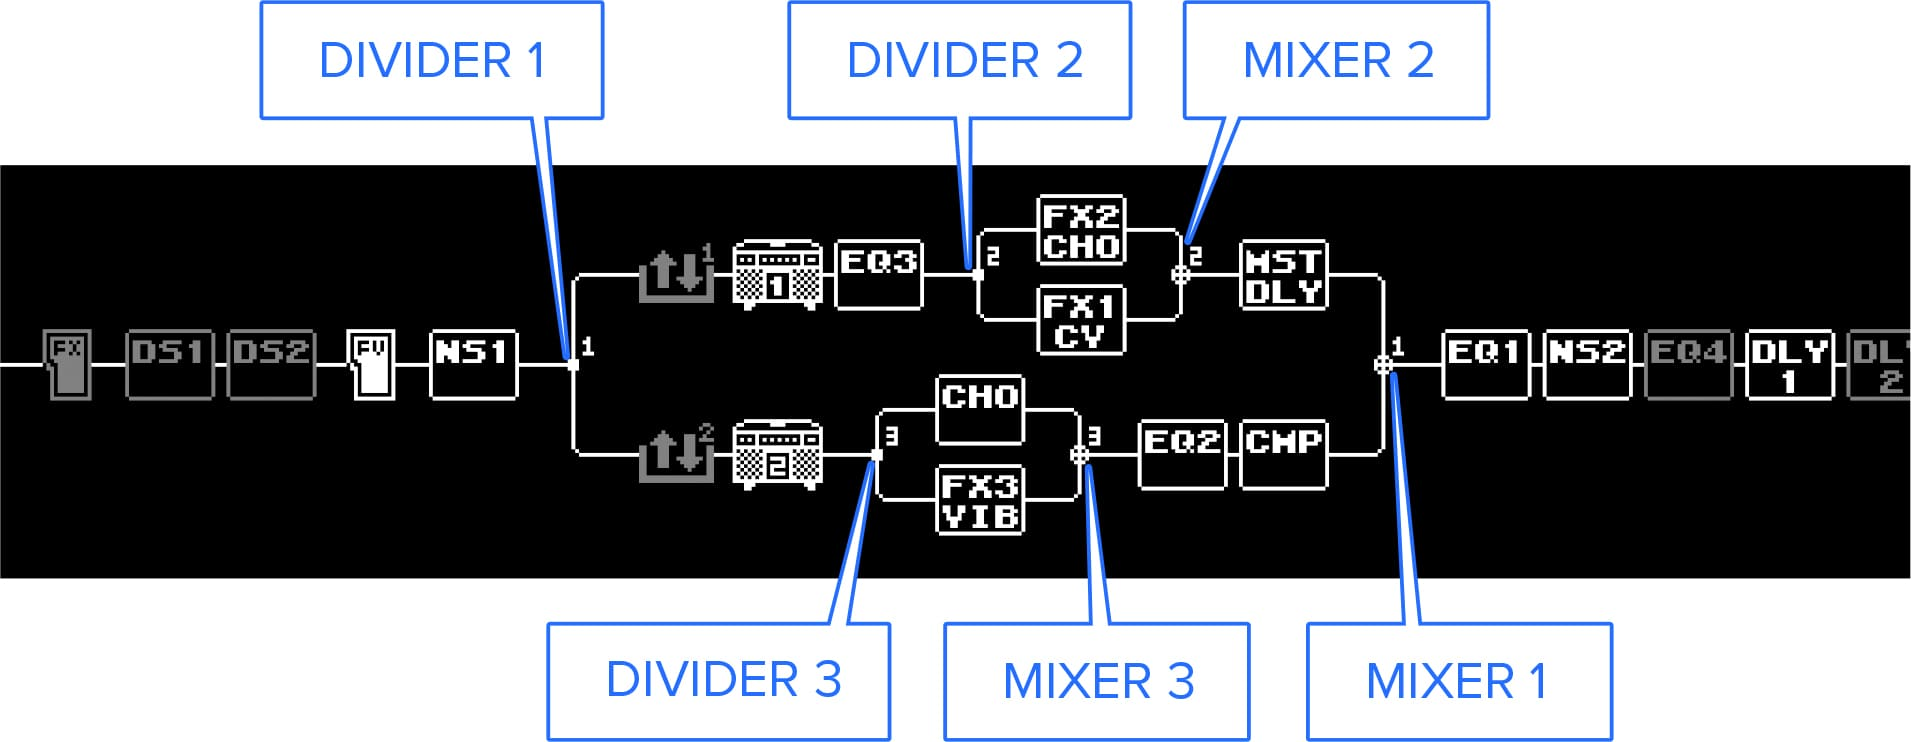 hight resolution of the exit point into each chain is called the mixer this functions as you might expect determining how to mix the signals from ch a and ch b back into the